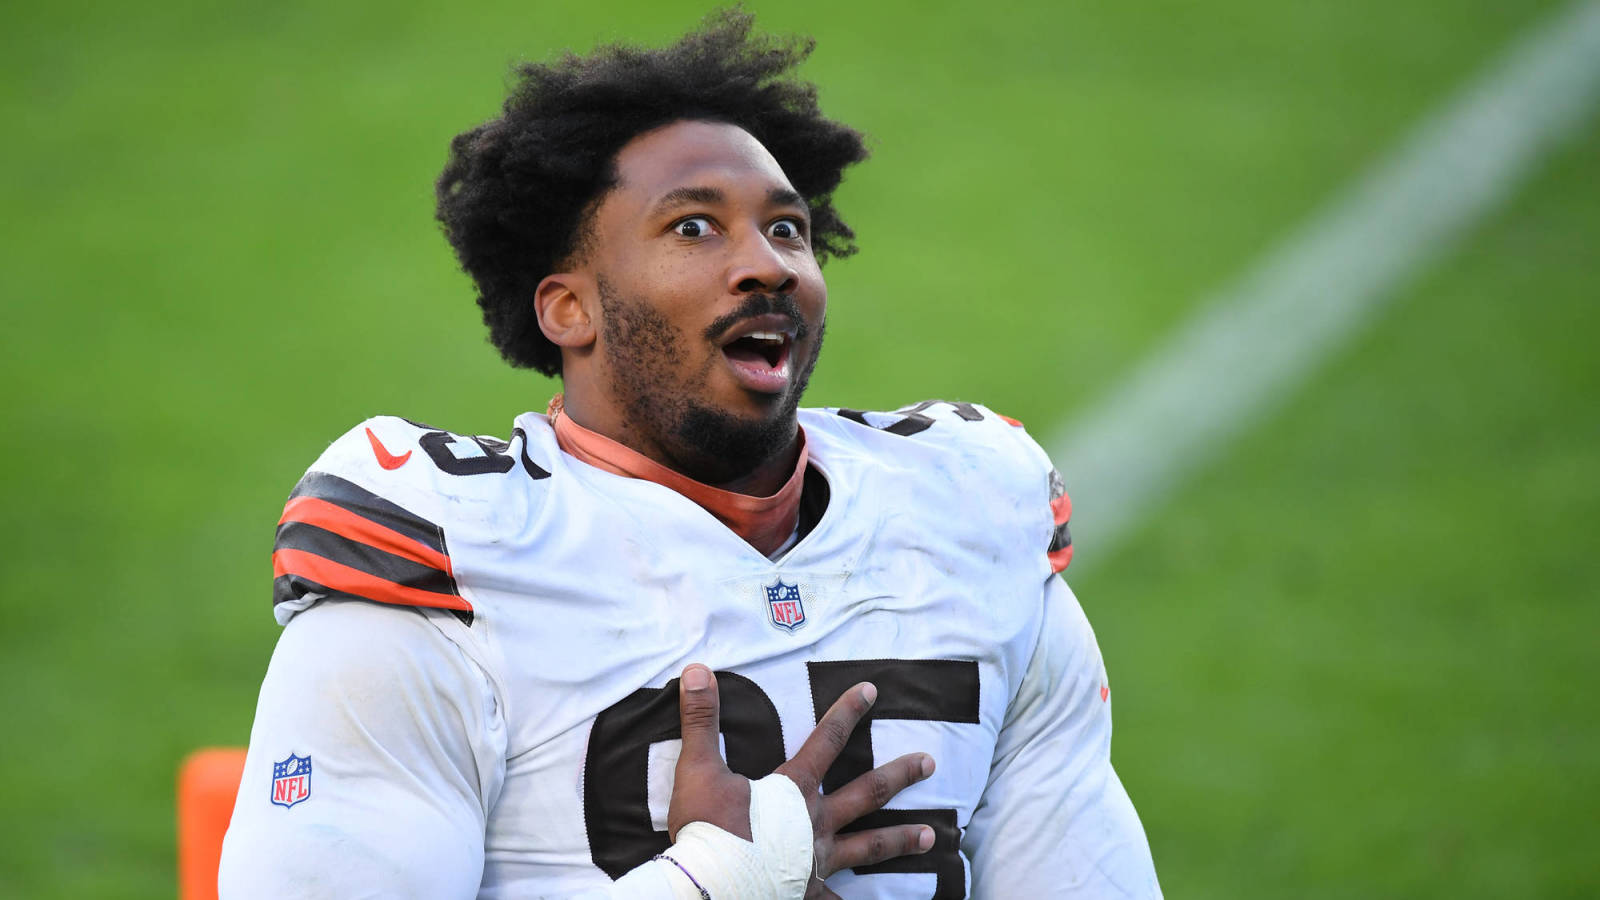 Stats show Myles Garrett is not the same player since returning ...